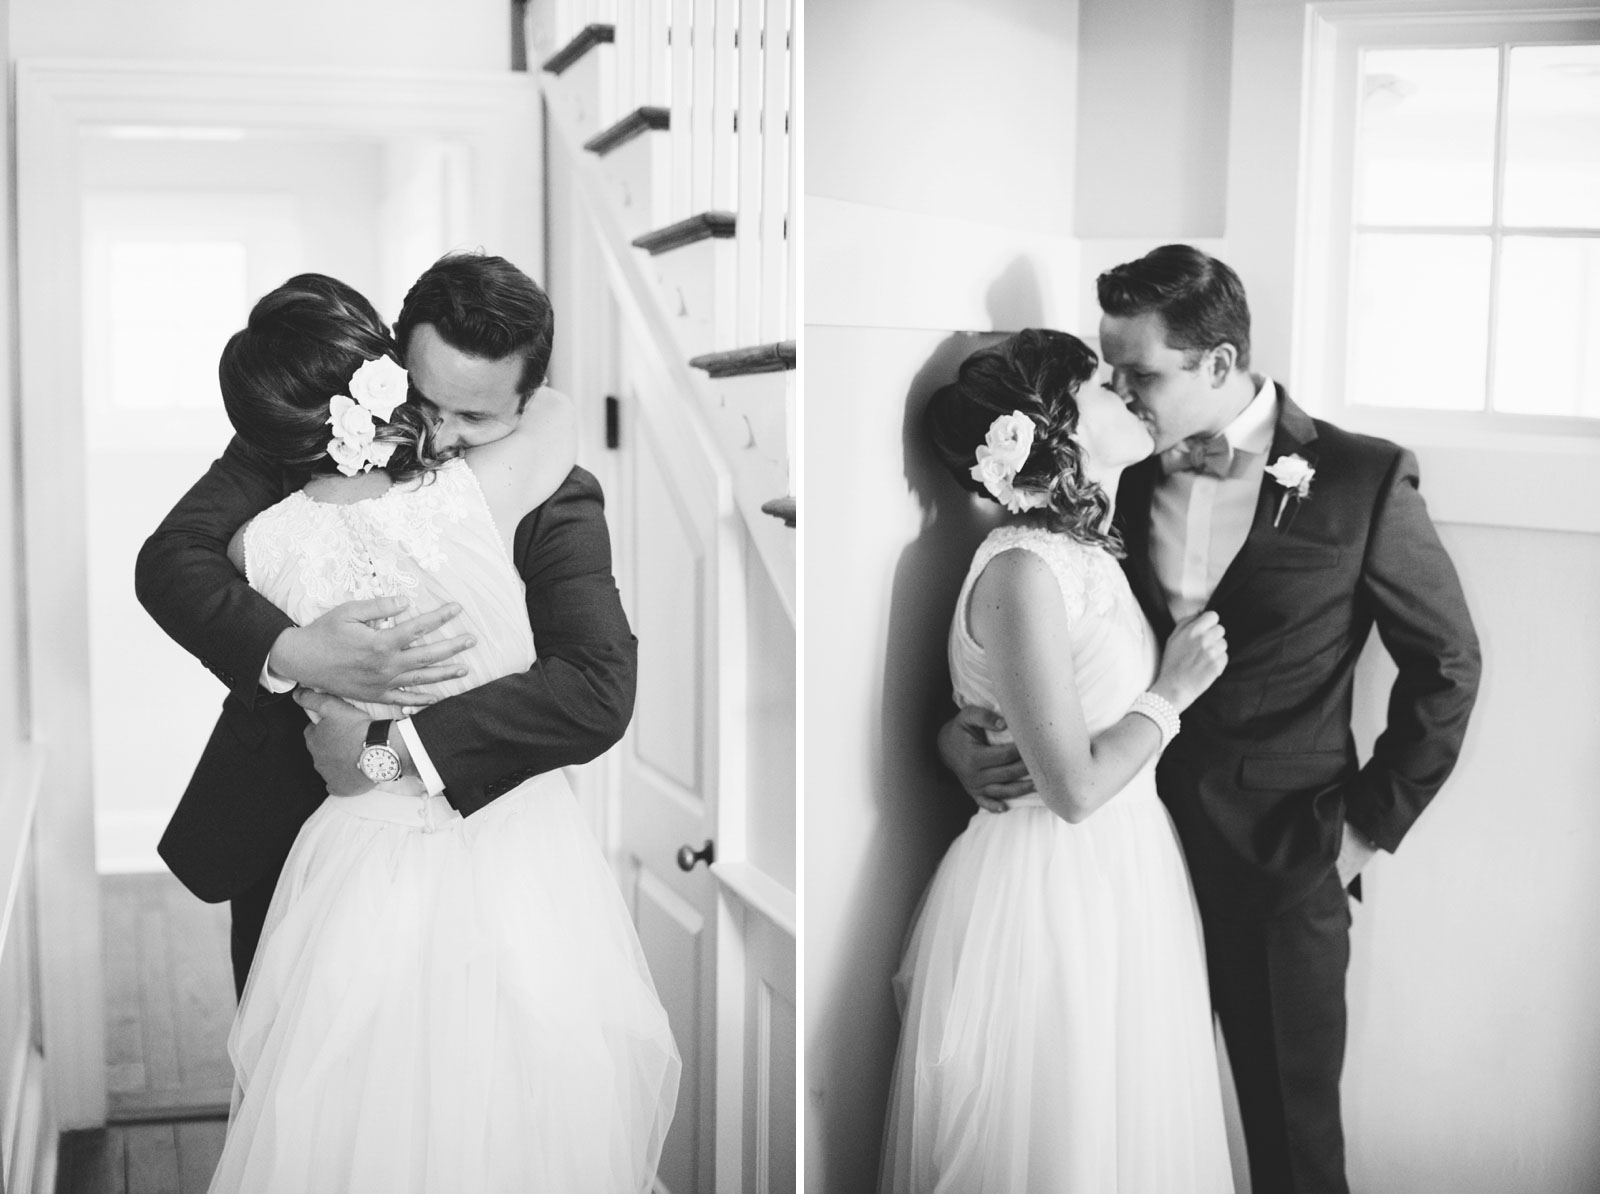 Bride and groom embracing during their first look, romantic black and white